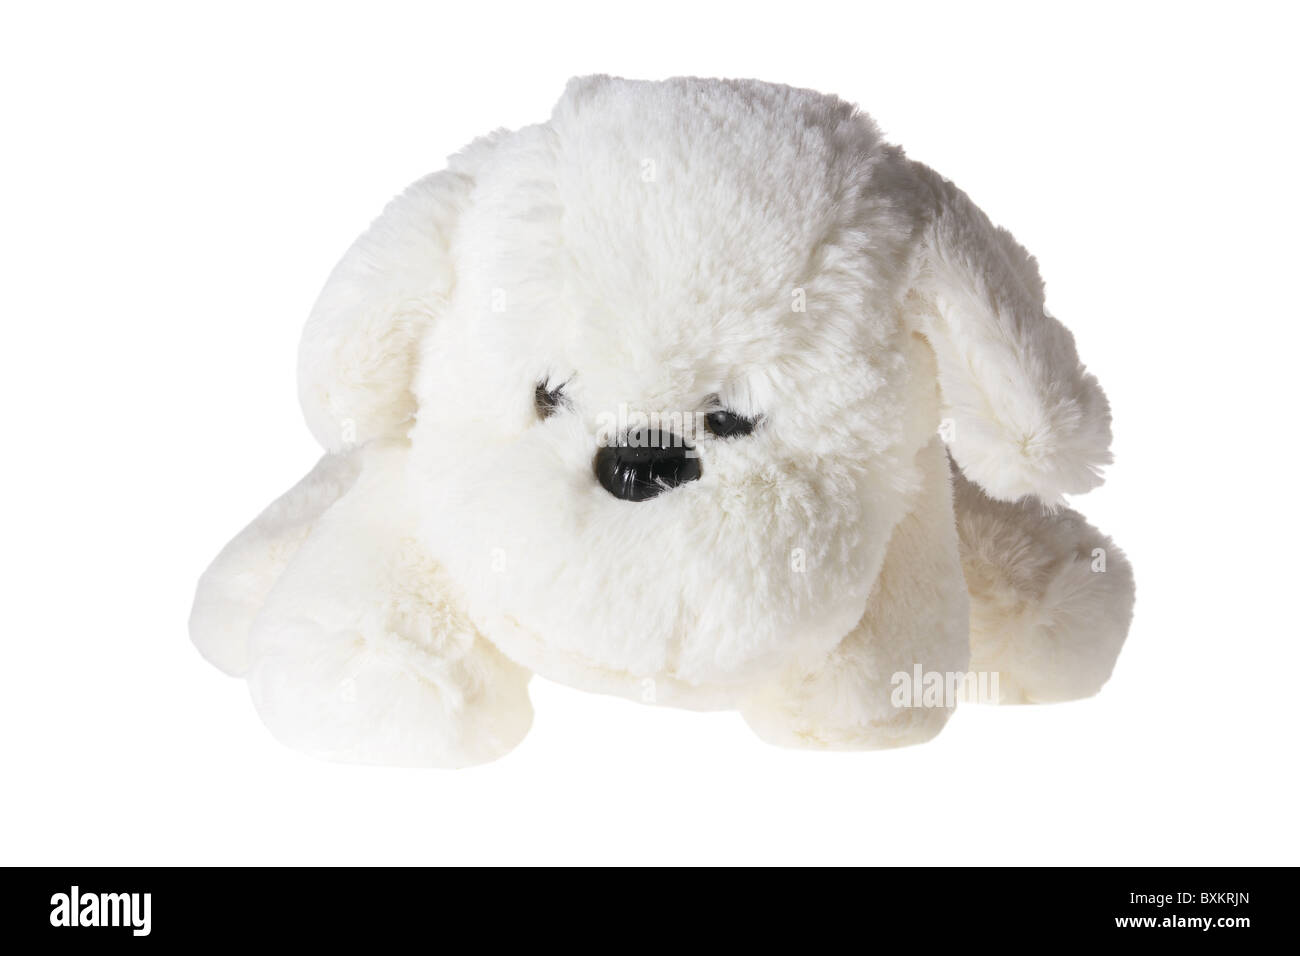 Soft Toy Dog Cuddly Toy Dog Stock Photos And Cuddly Toy Dog Stock Images